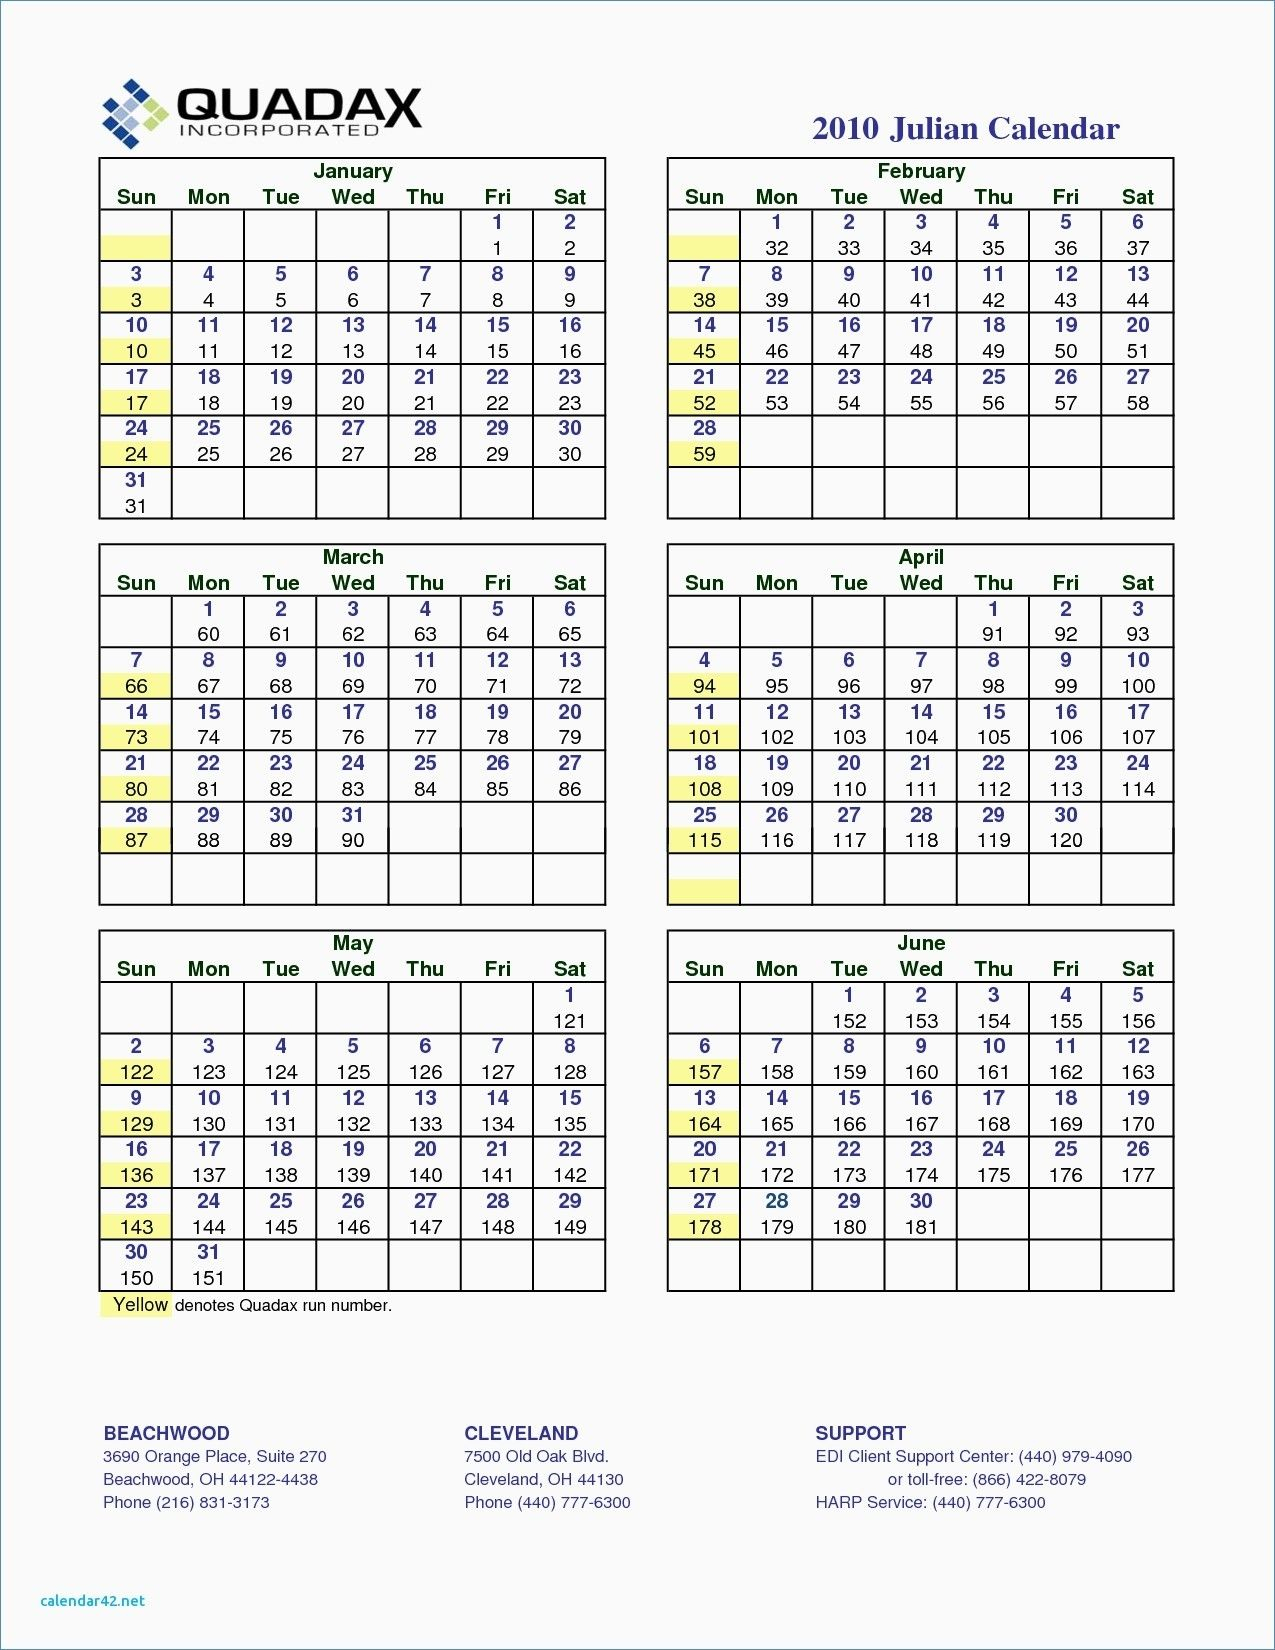 Julian Calendar 2019 Quadax July 2018 Calendar Sri Lanka regarding Julian Date Calendar For Year 2020